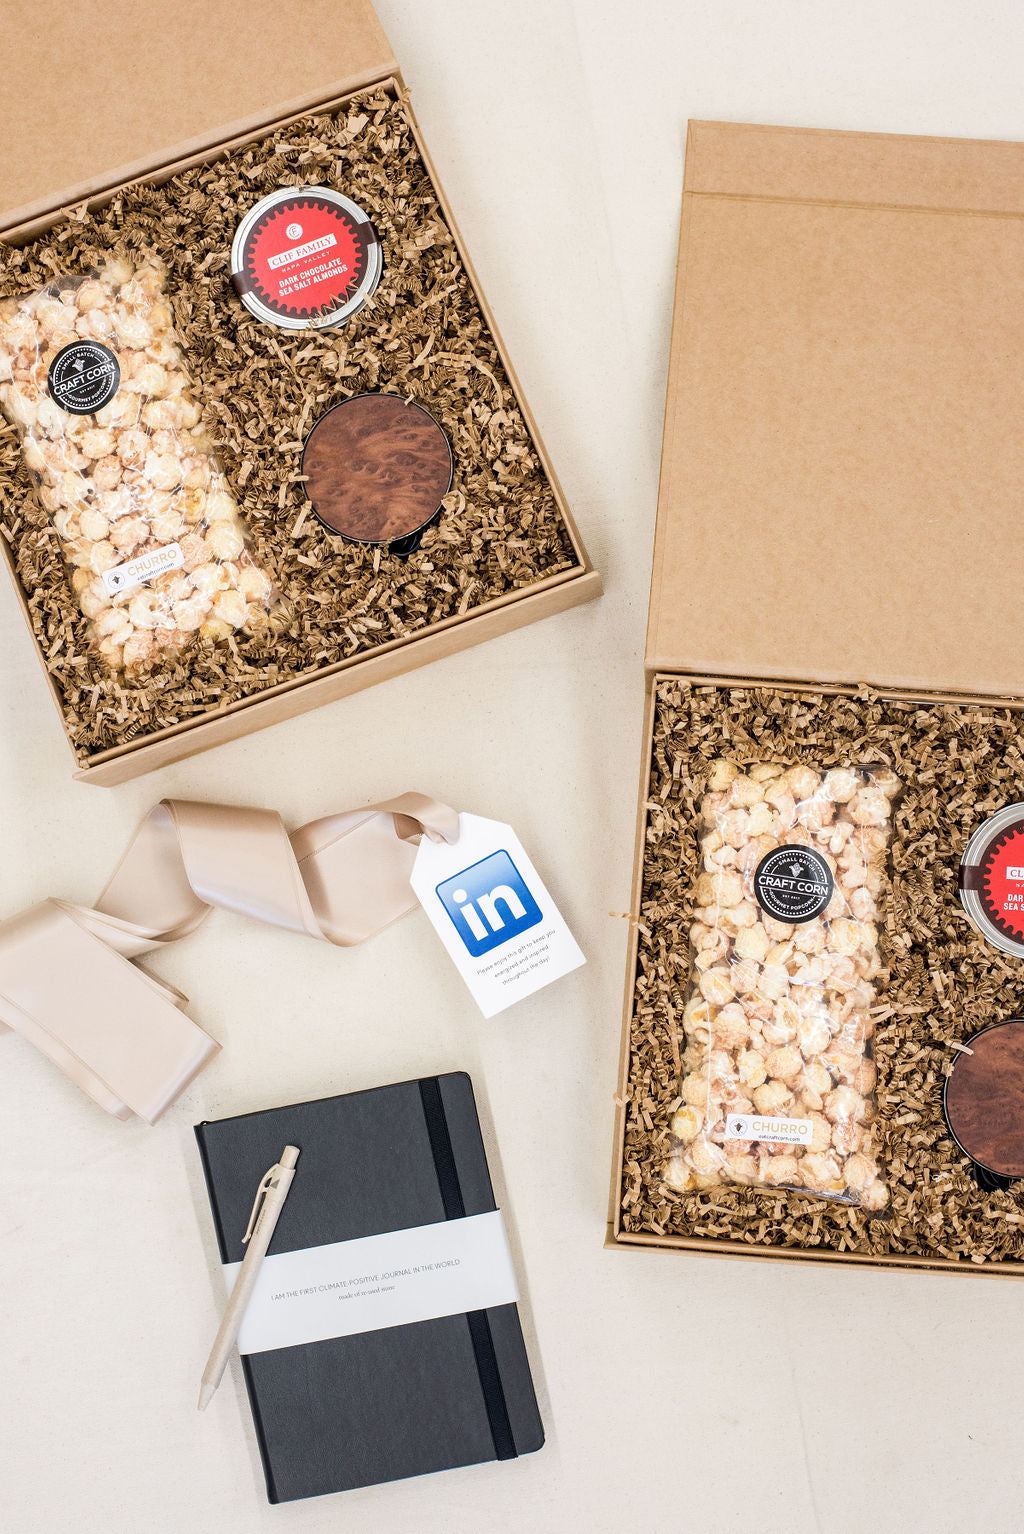 Luxury corporate event welcome gifts for LinkedIn